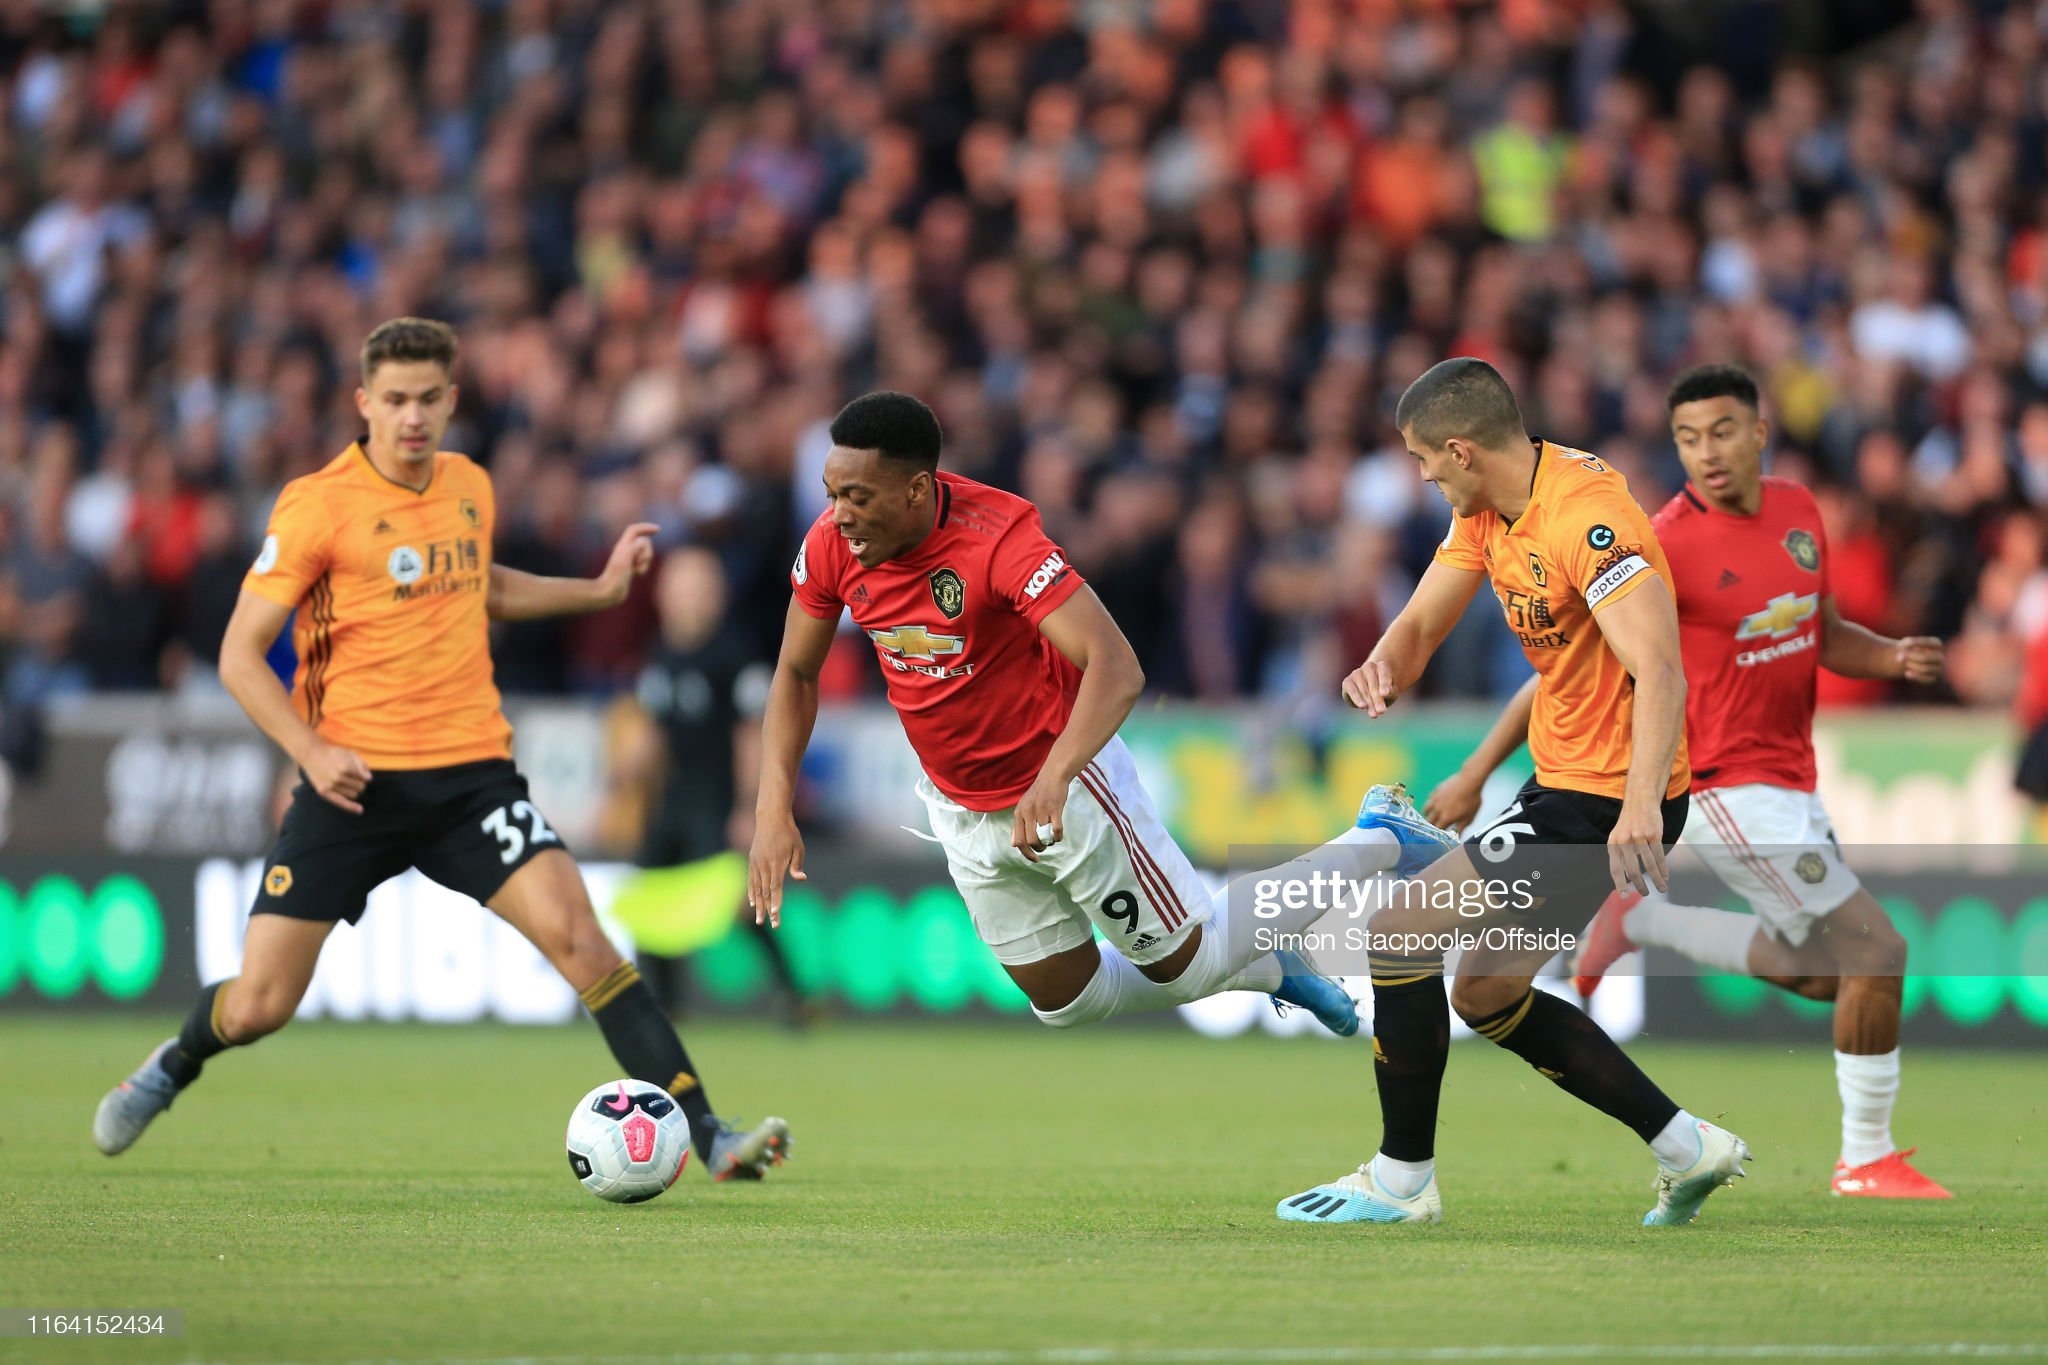 Wolves v Manchester United preview, prediction and odds